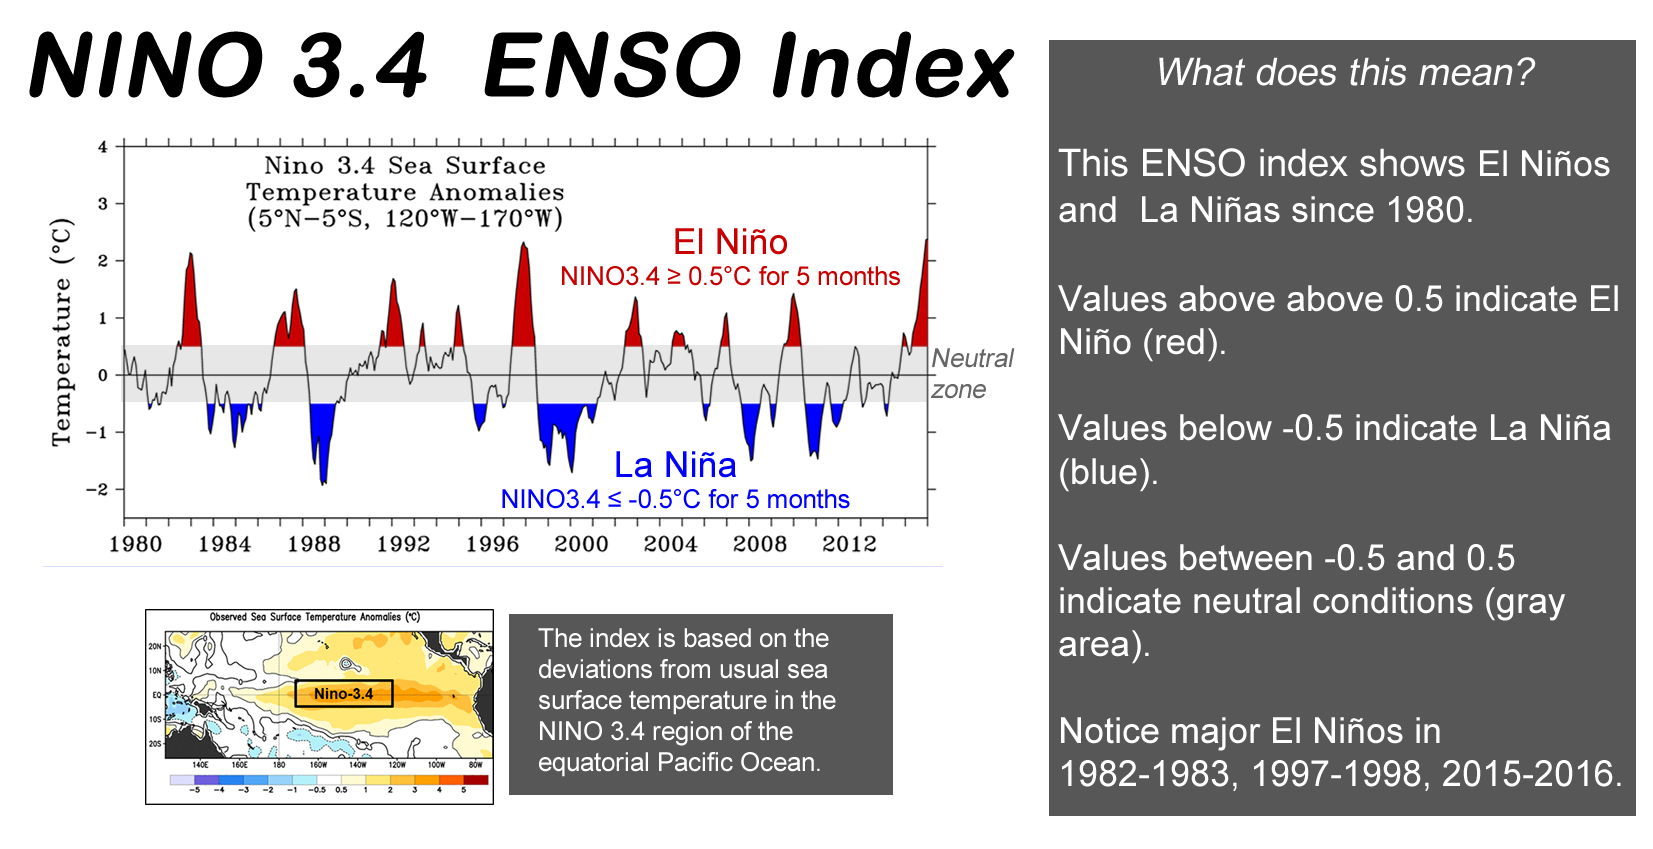 el nino southern oscillation essay El niño and la niña are terms for climatic events originating in the tropical pacific that el nino la nina el niño  la niña and the southern oscillation.